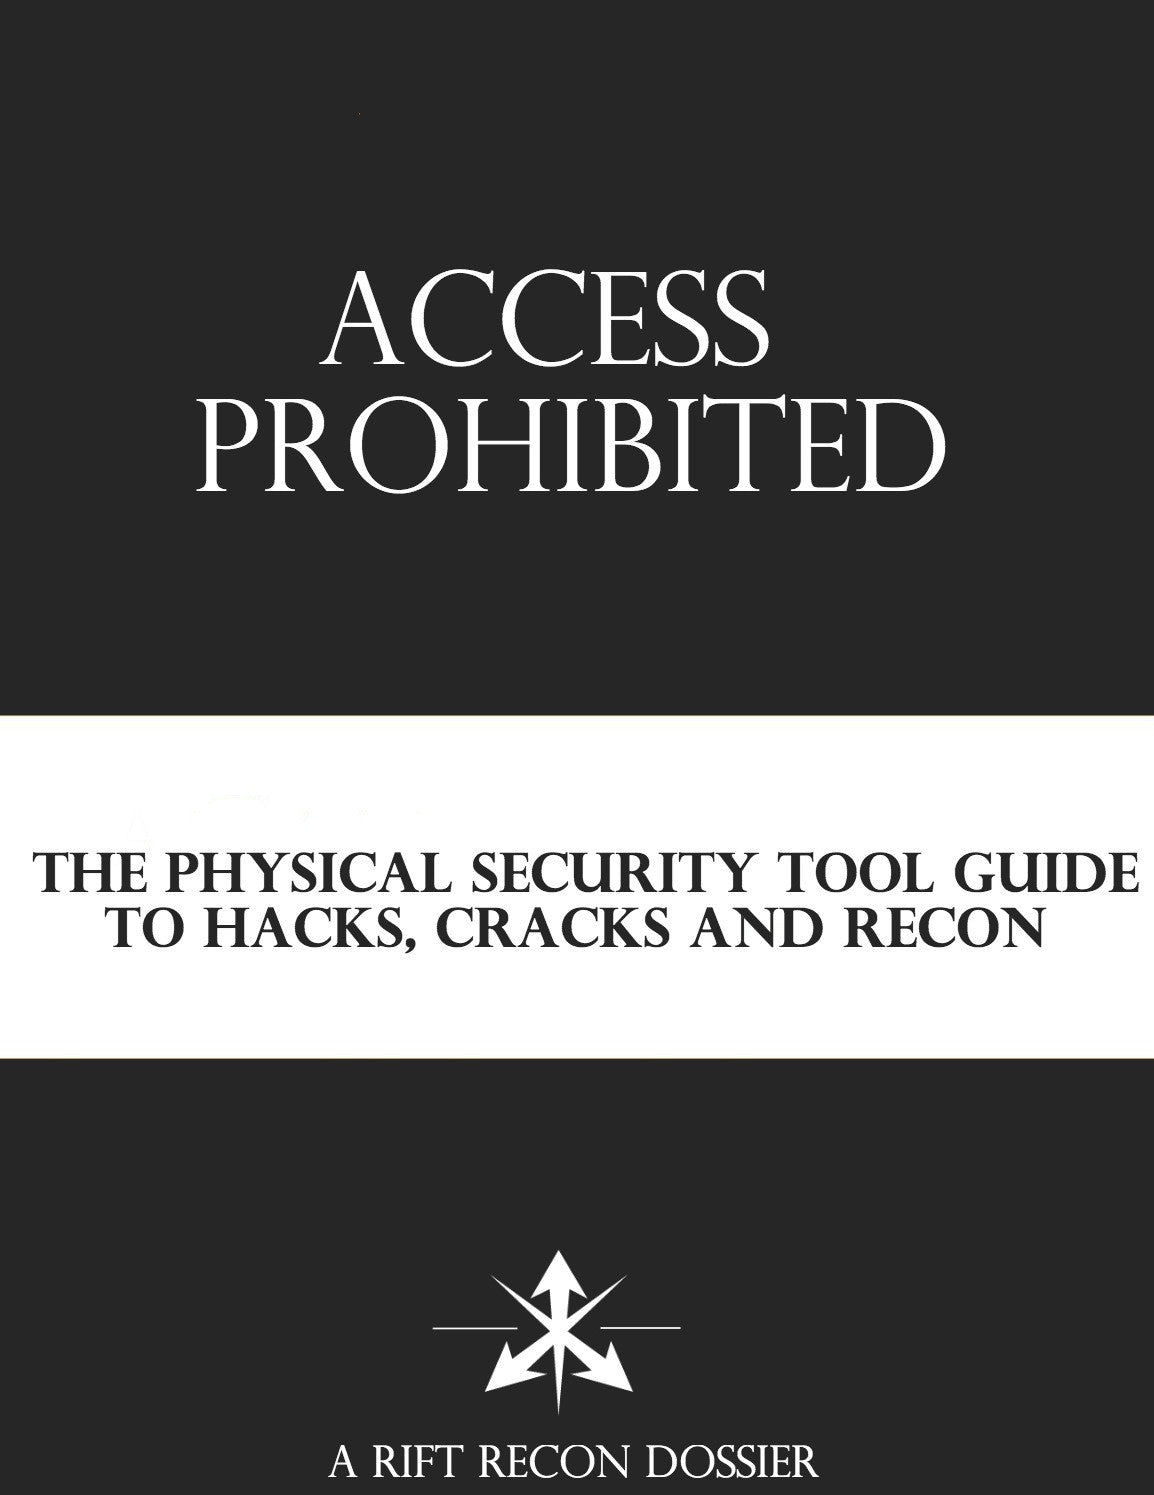 ACCESS PROHIBITED - The Physical Security Tool Guide to Hacks, Cracks, and Recon